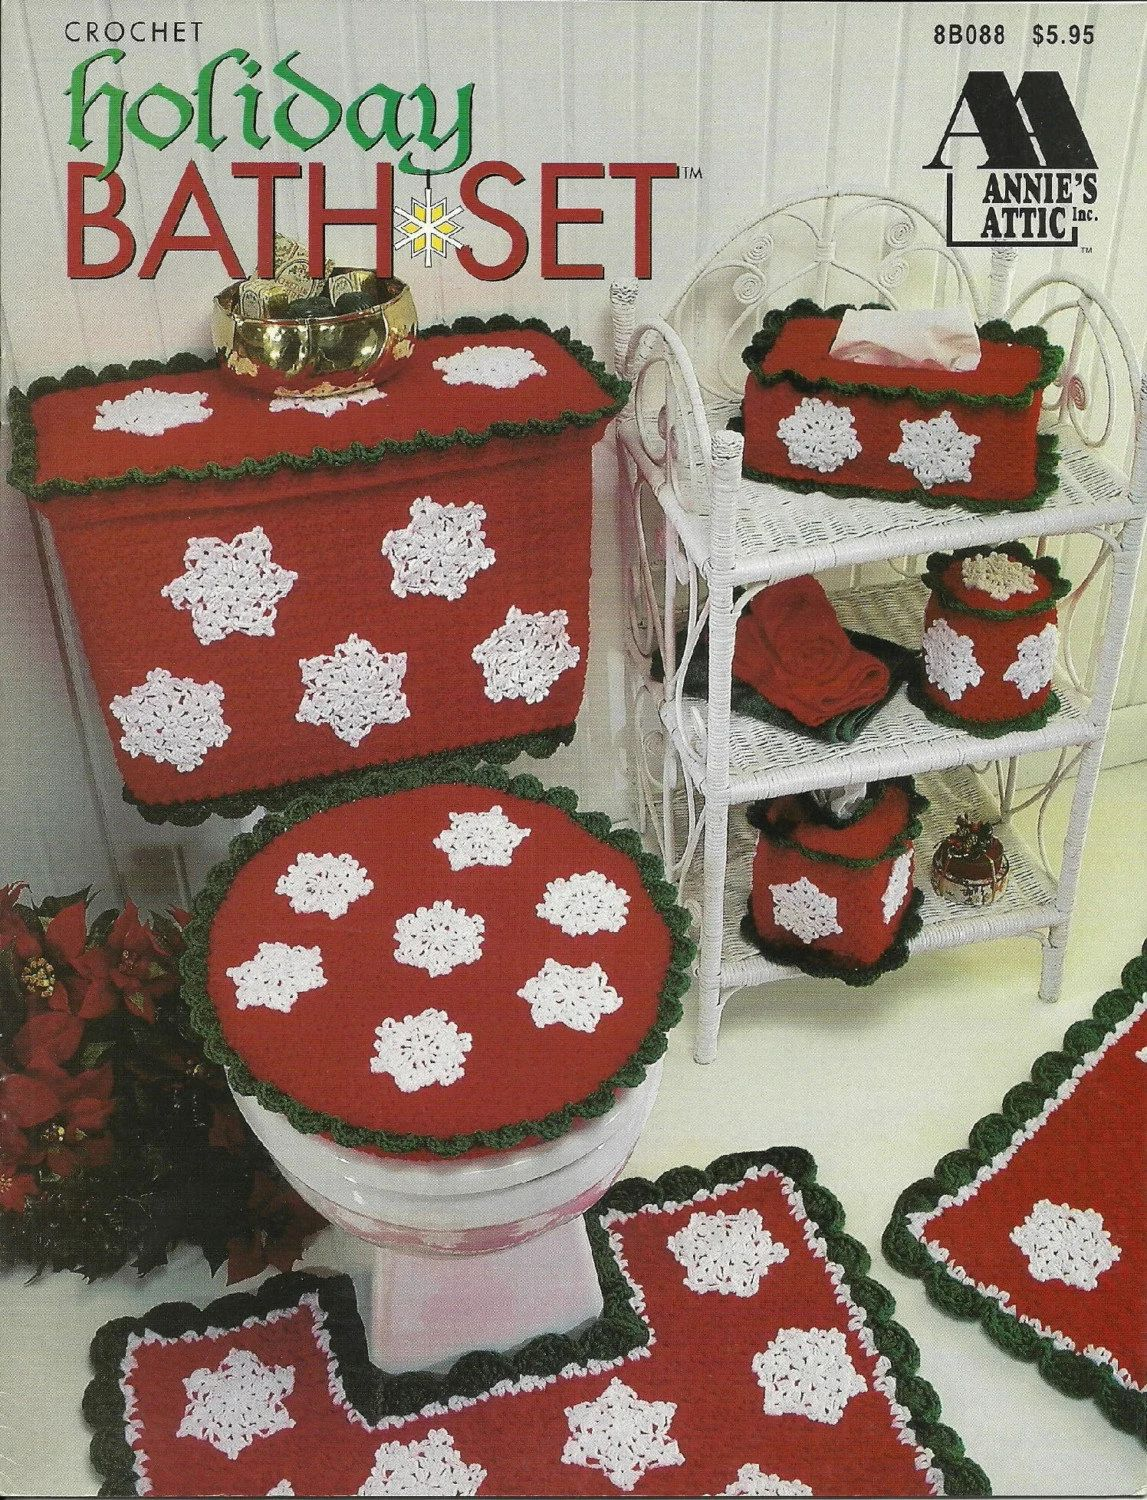 Holiday bath setcrochet bathroom decor pattern book by